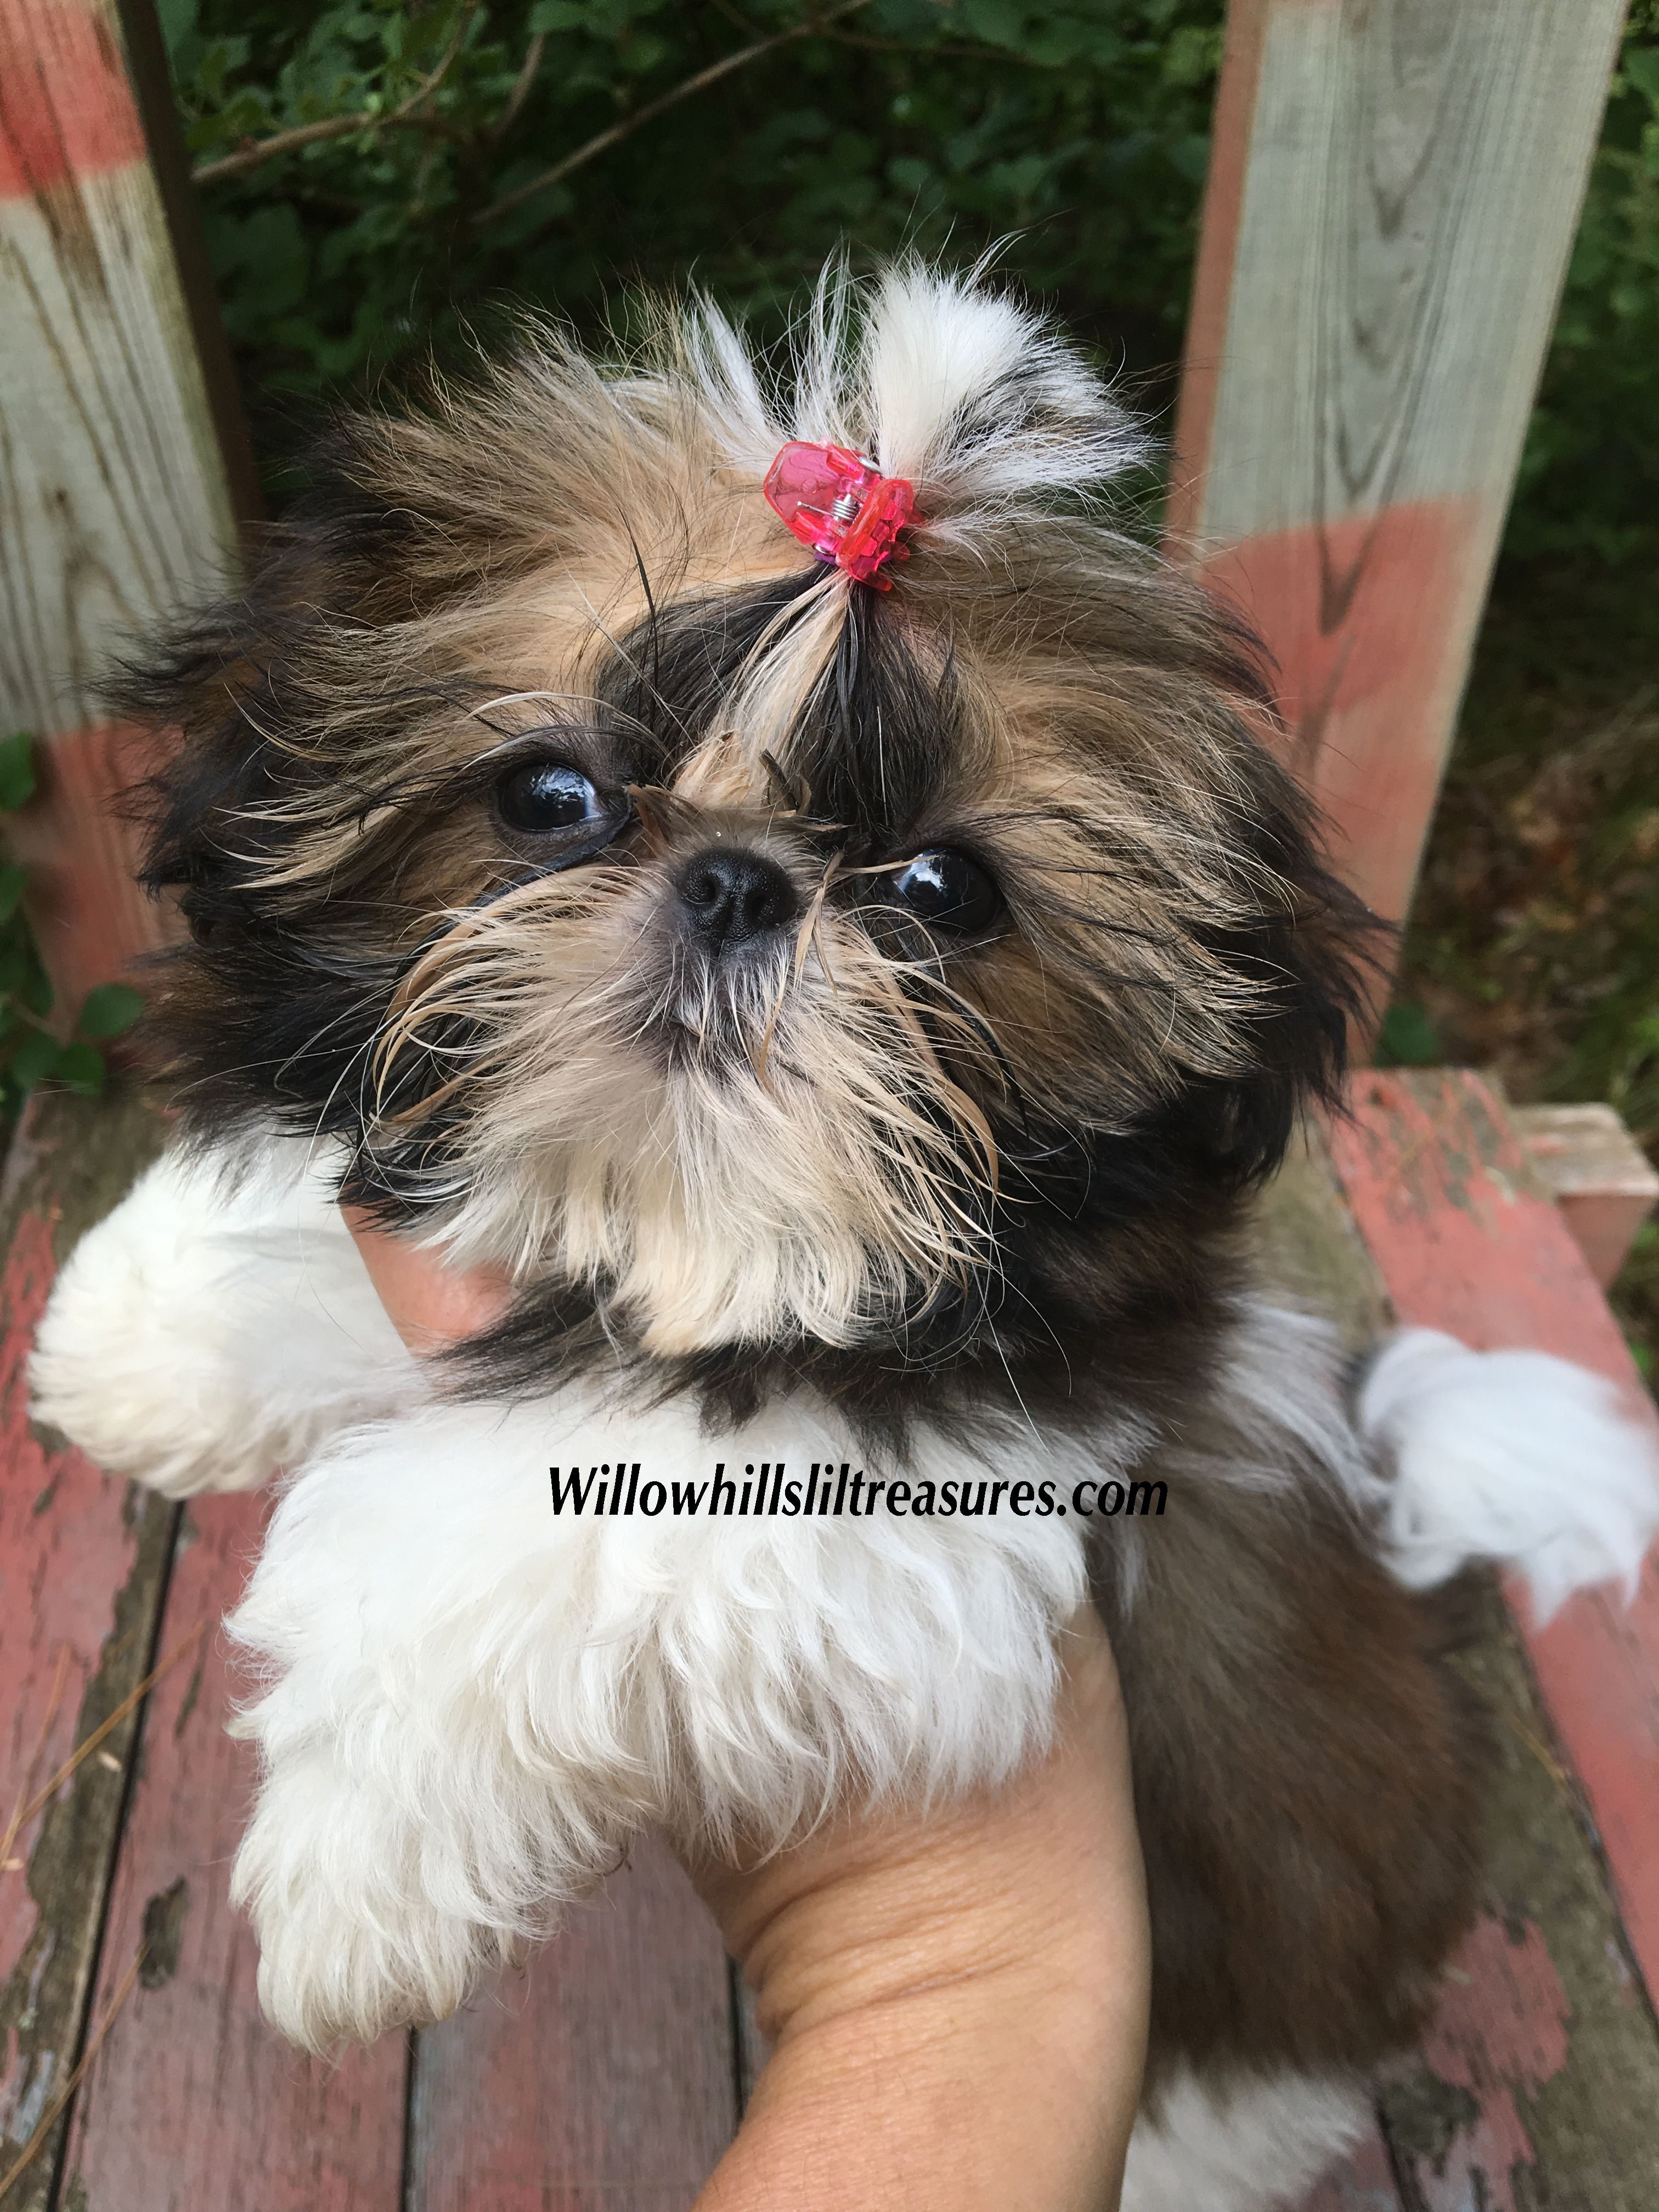 Pin By Darlene Pitzer On Puppies Cute Dogs And Puppies Shih Tzu Puppy Lap Dogs